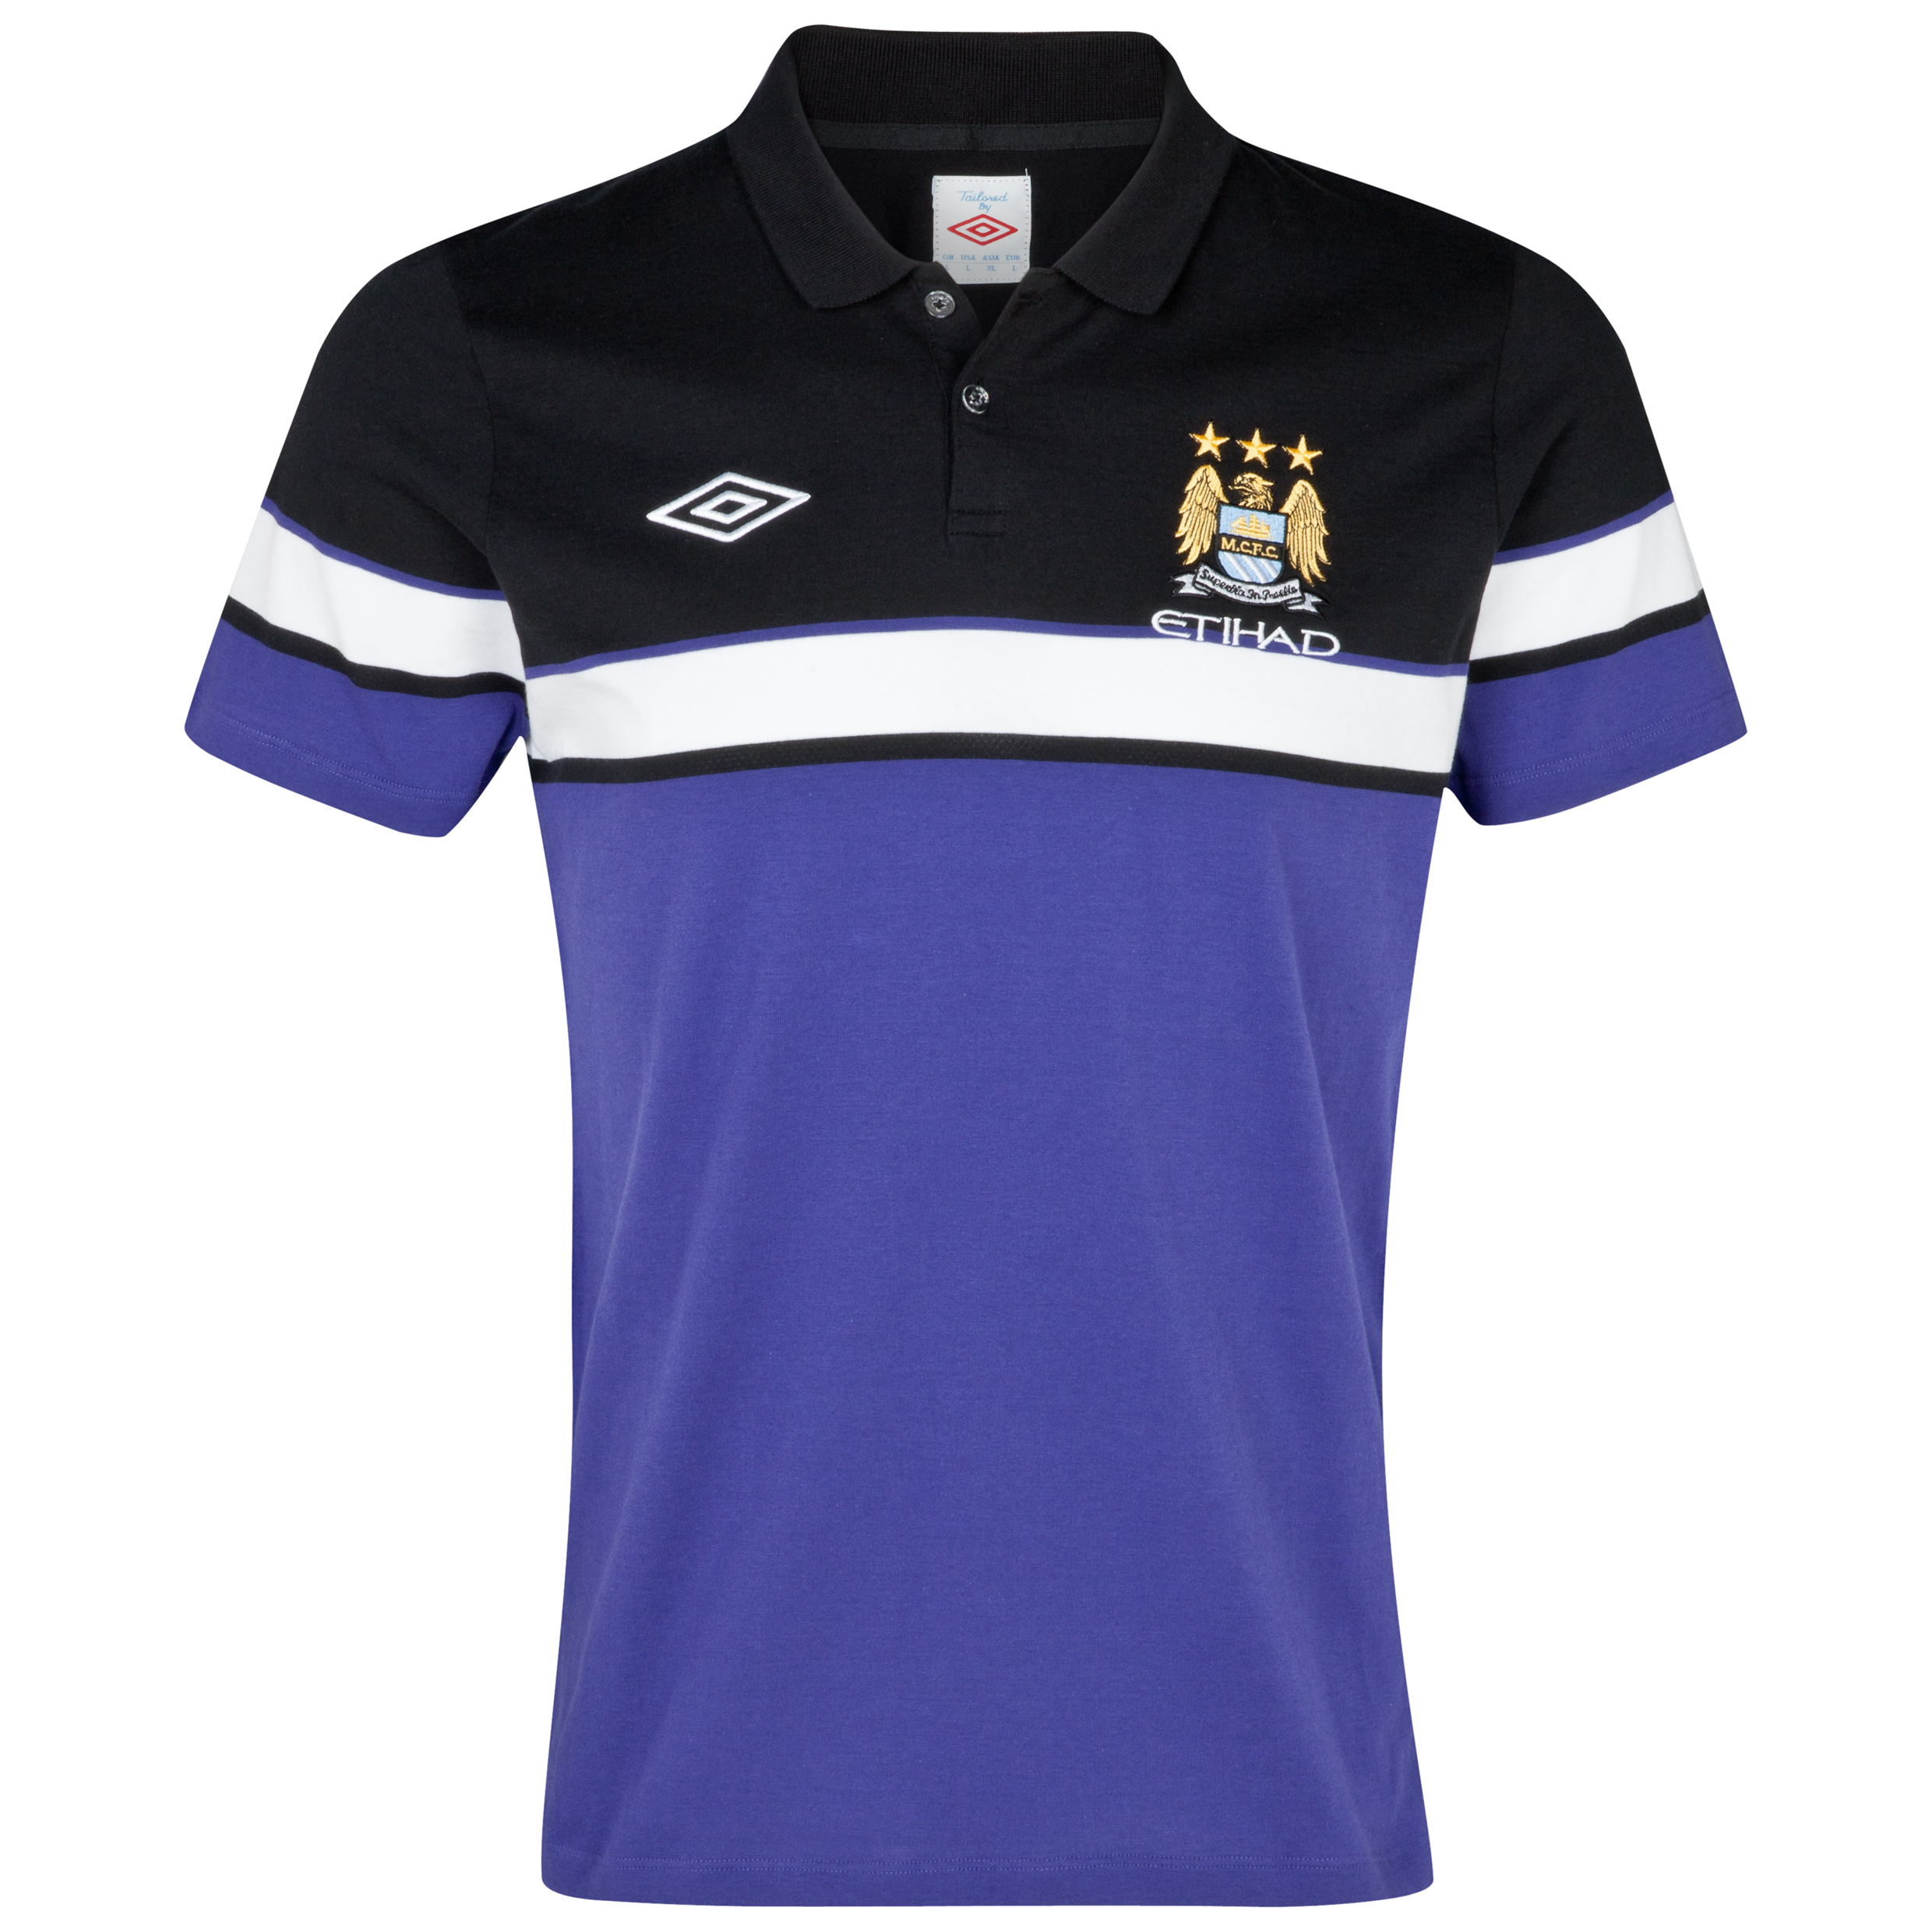 Manchester City Cotton Polo - Deep Wisteria / Black / White